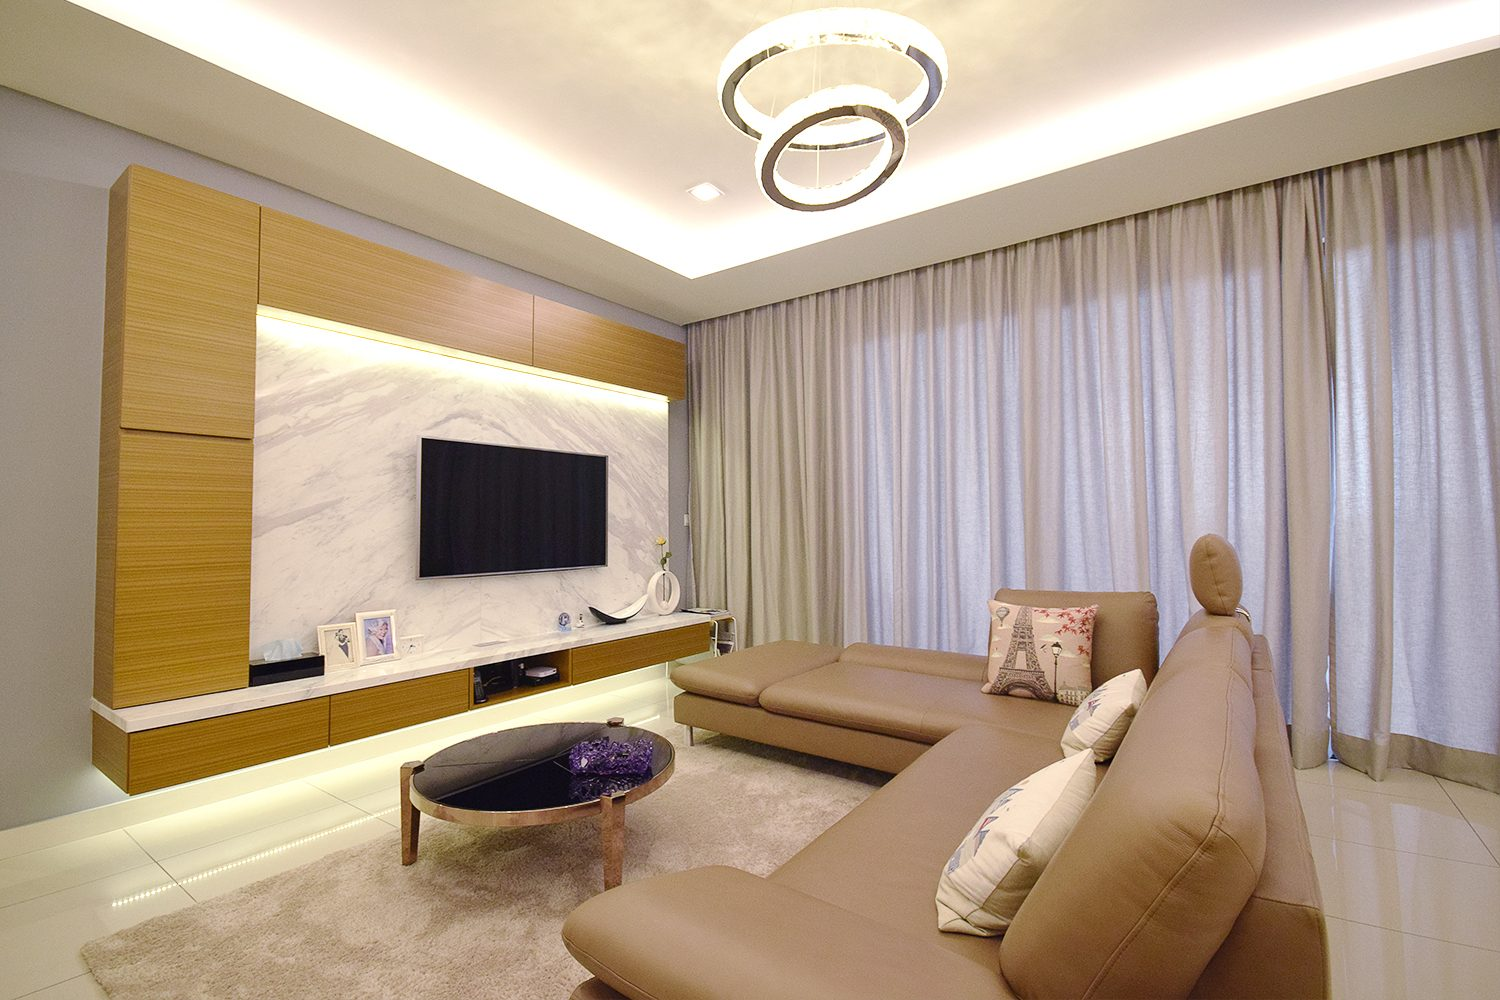 Condominium in Windows On The Park, KL. Project by: Hatch Design